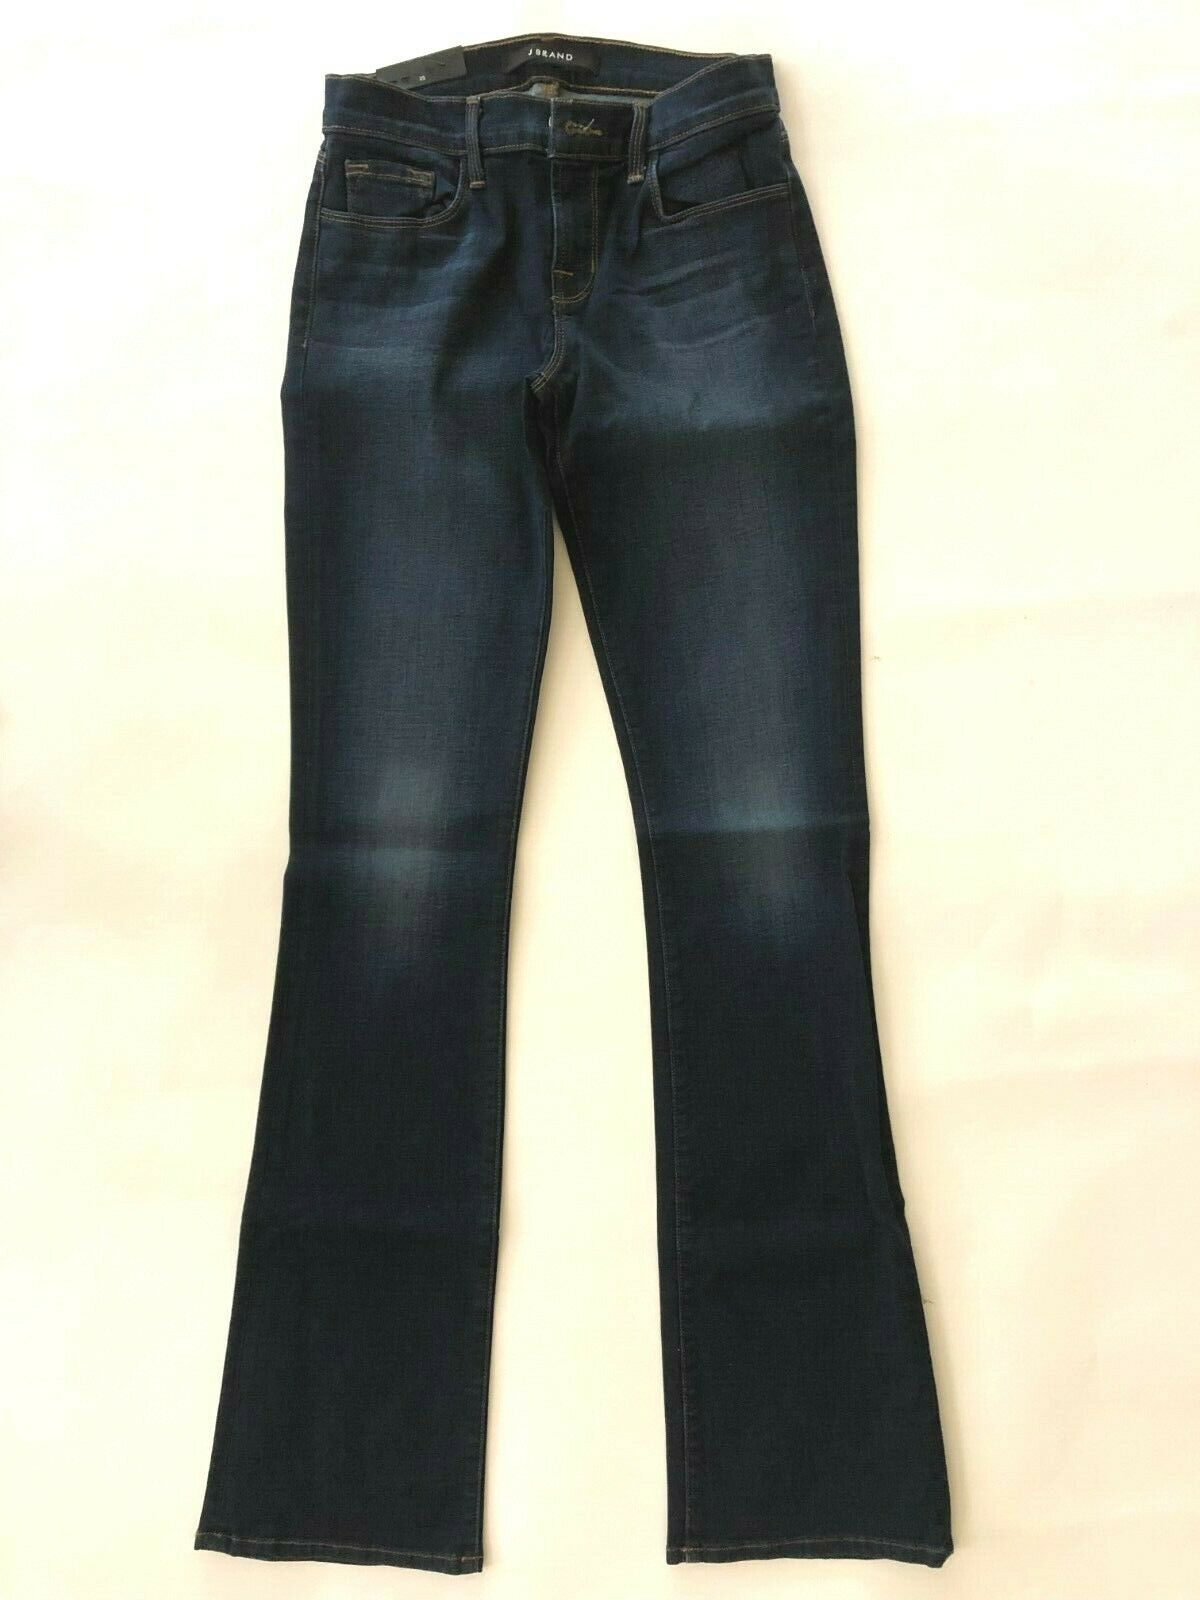 NWT J Brand Betty  188  Starlight 8119C095 mid rise boot cut jeans womens size 29  brand outlet